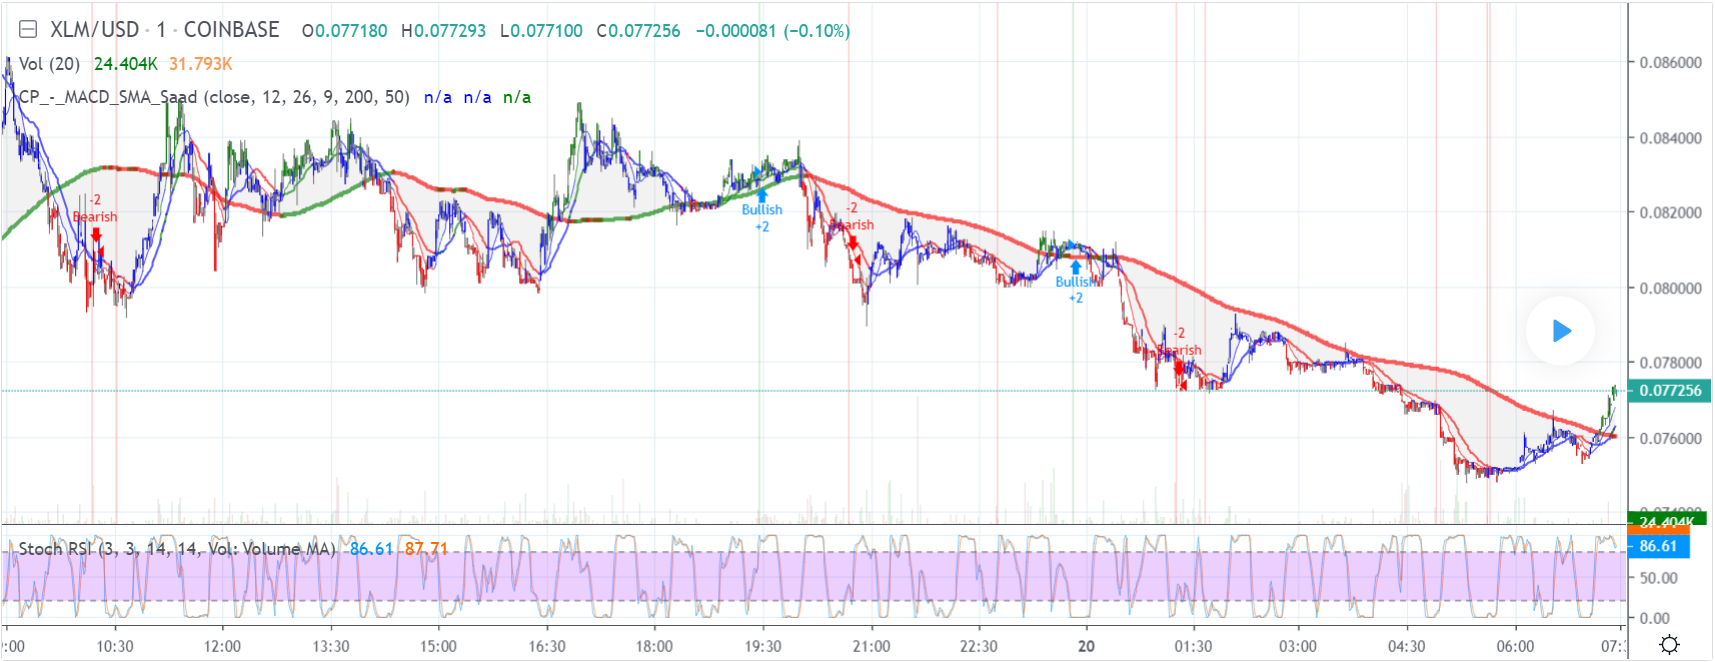 Stellar price analysis: Is XLM going above $0.082 again? 3